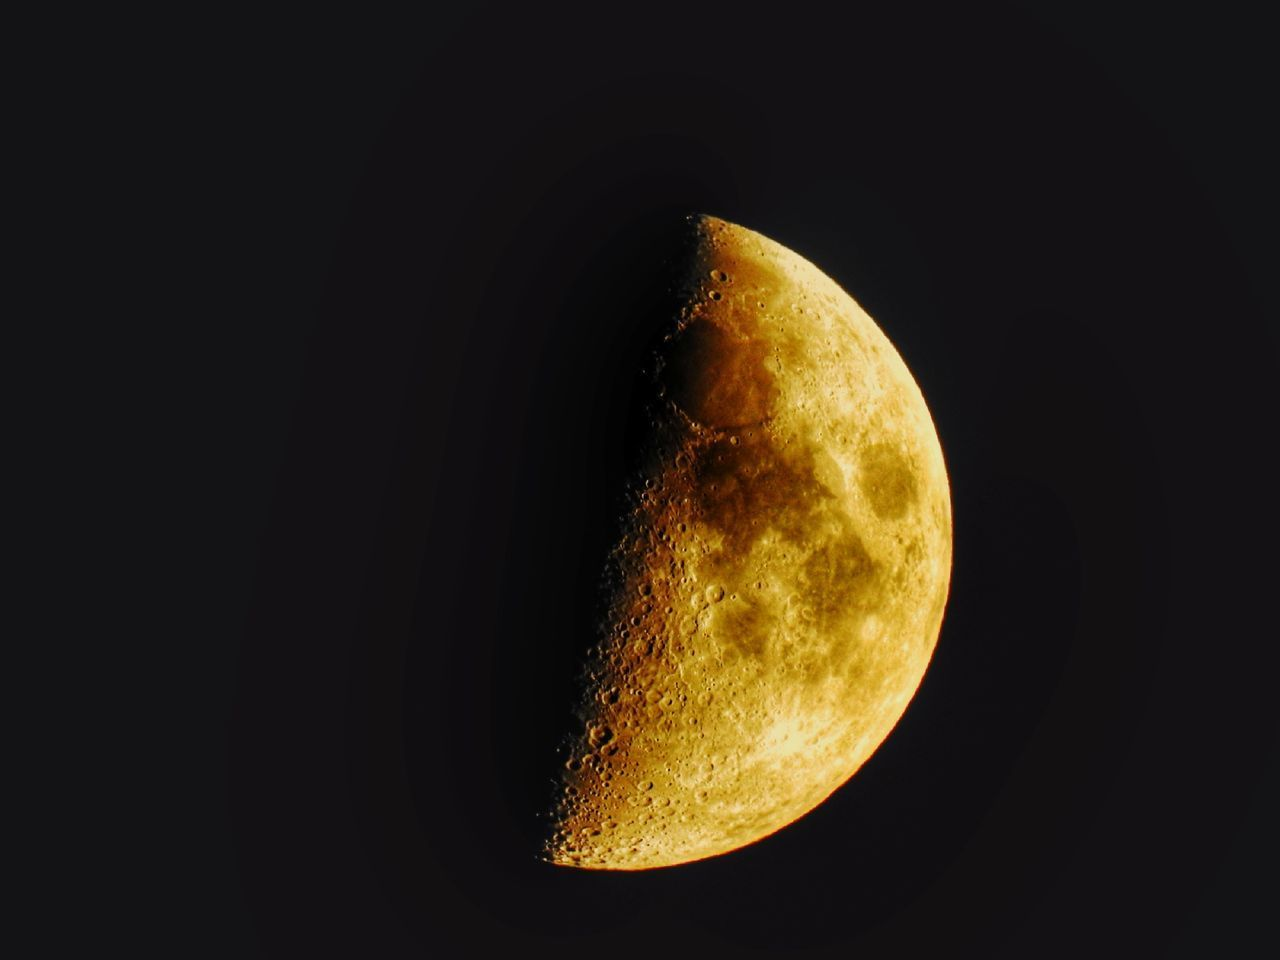 studio shot, black background, no people, space, close-up, copy space, astronomy, food and drink, indoors, moon, night, sky, beauty in nature, food, yellow, single object, nature, dark, mystery, potato, planetary moon